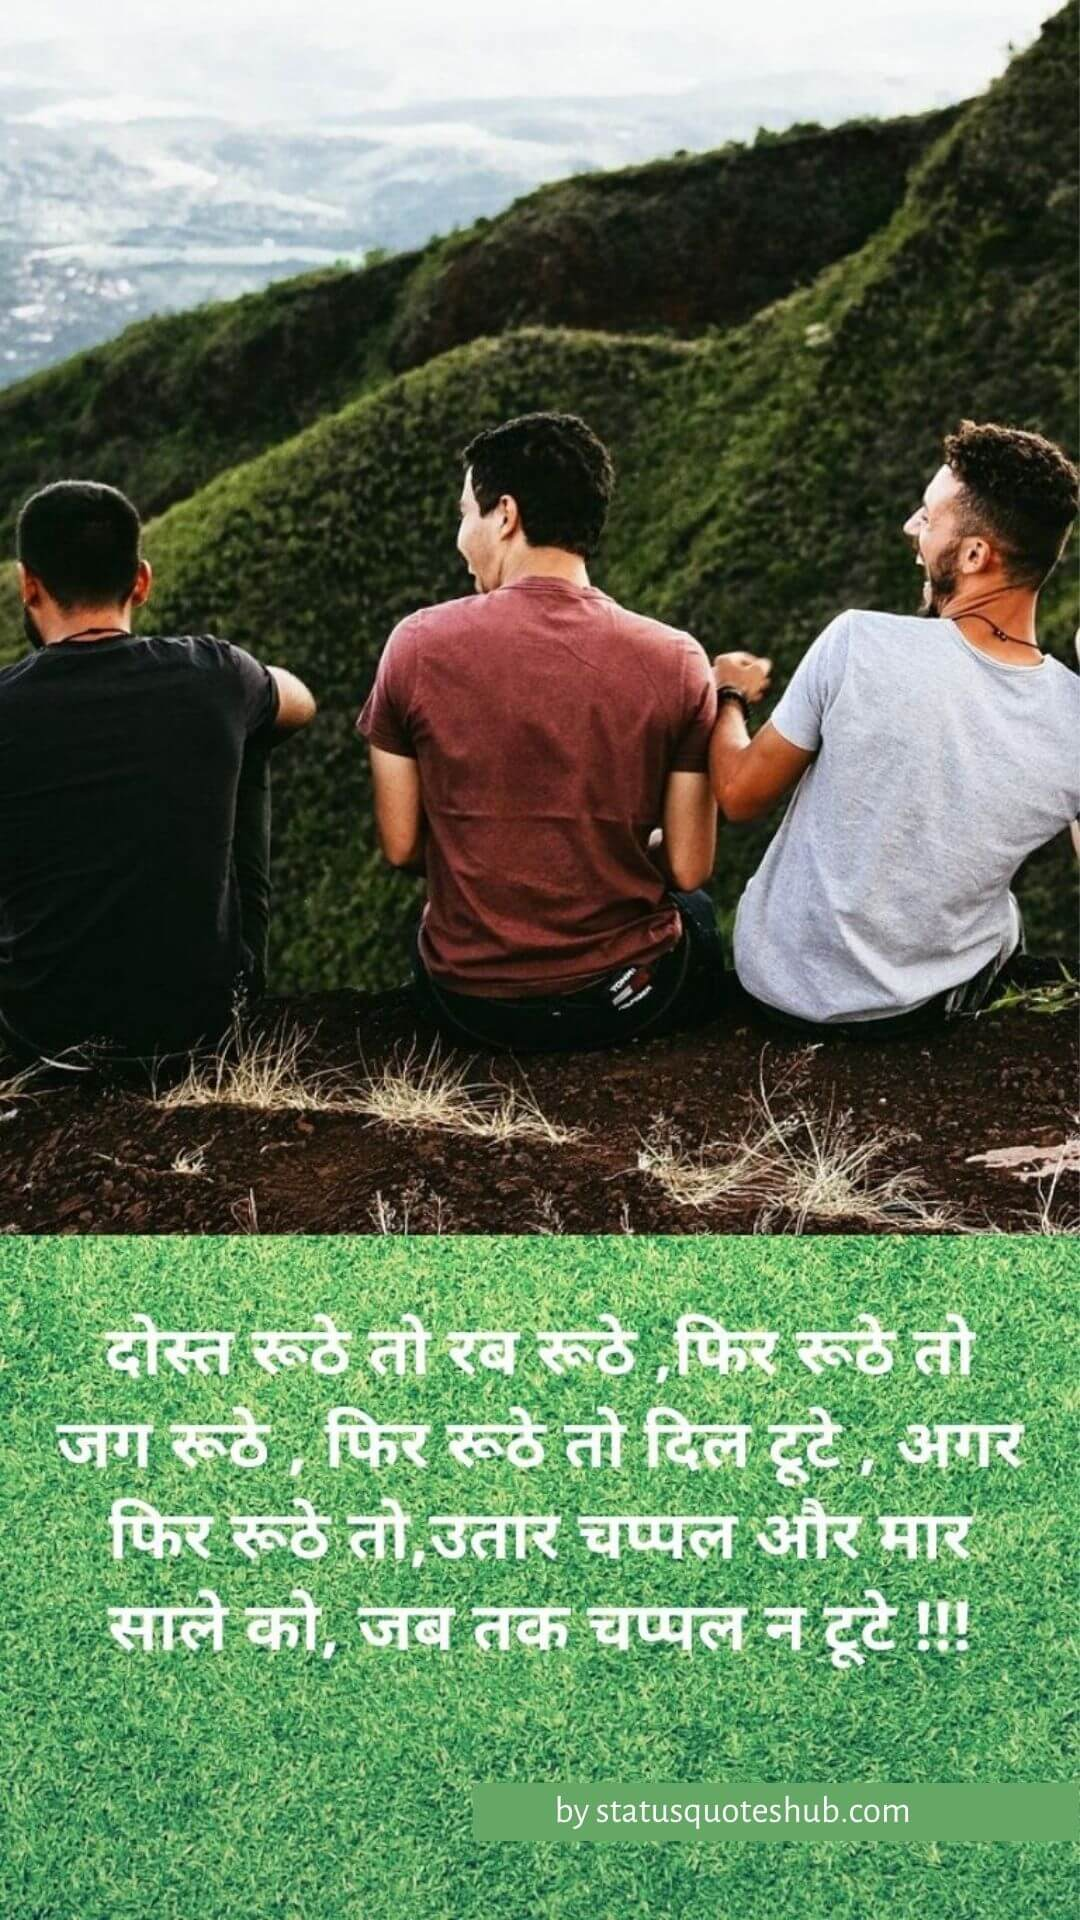 funny whatsapp status for friends in hindi